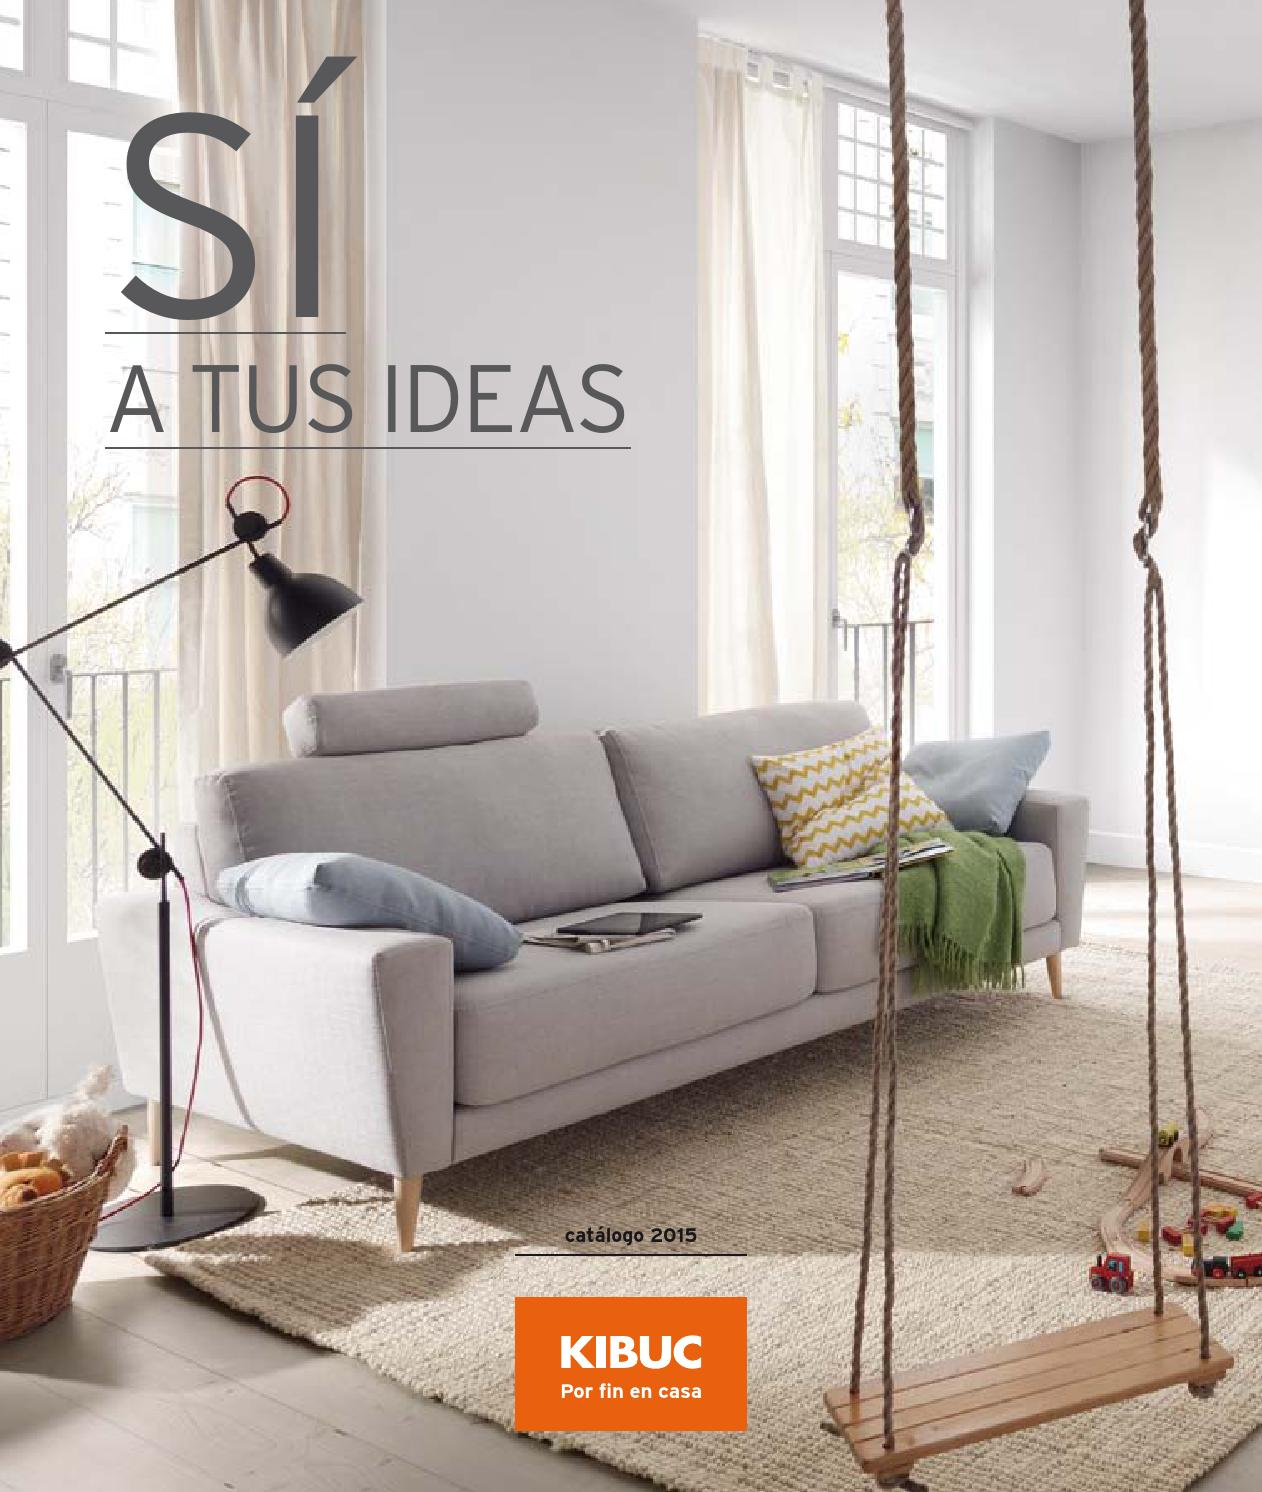 Catalogo 2014 15 by kibuc for Sofa cama 135 ancho